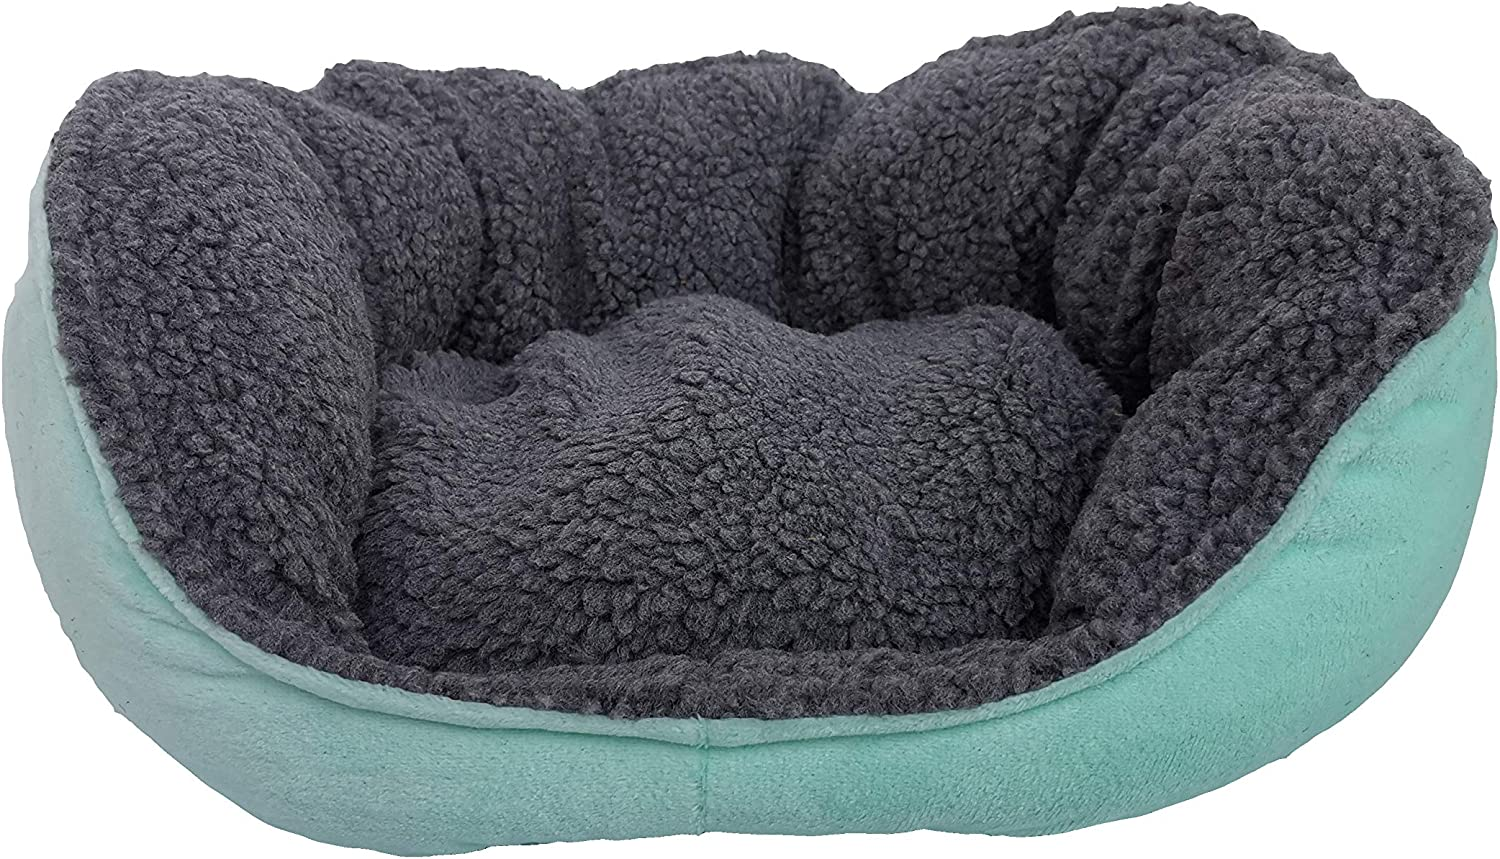 PAWSINSIDE Warm Fleece Cuddle Bed for Pigs Super intense SALE Animals Guinea Special price Small